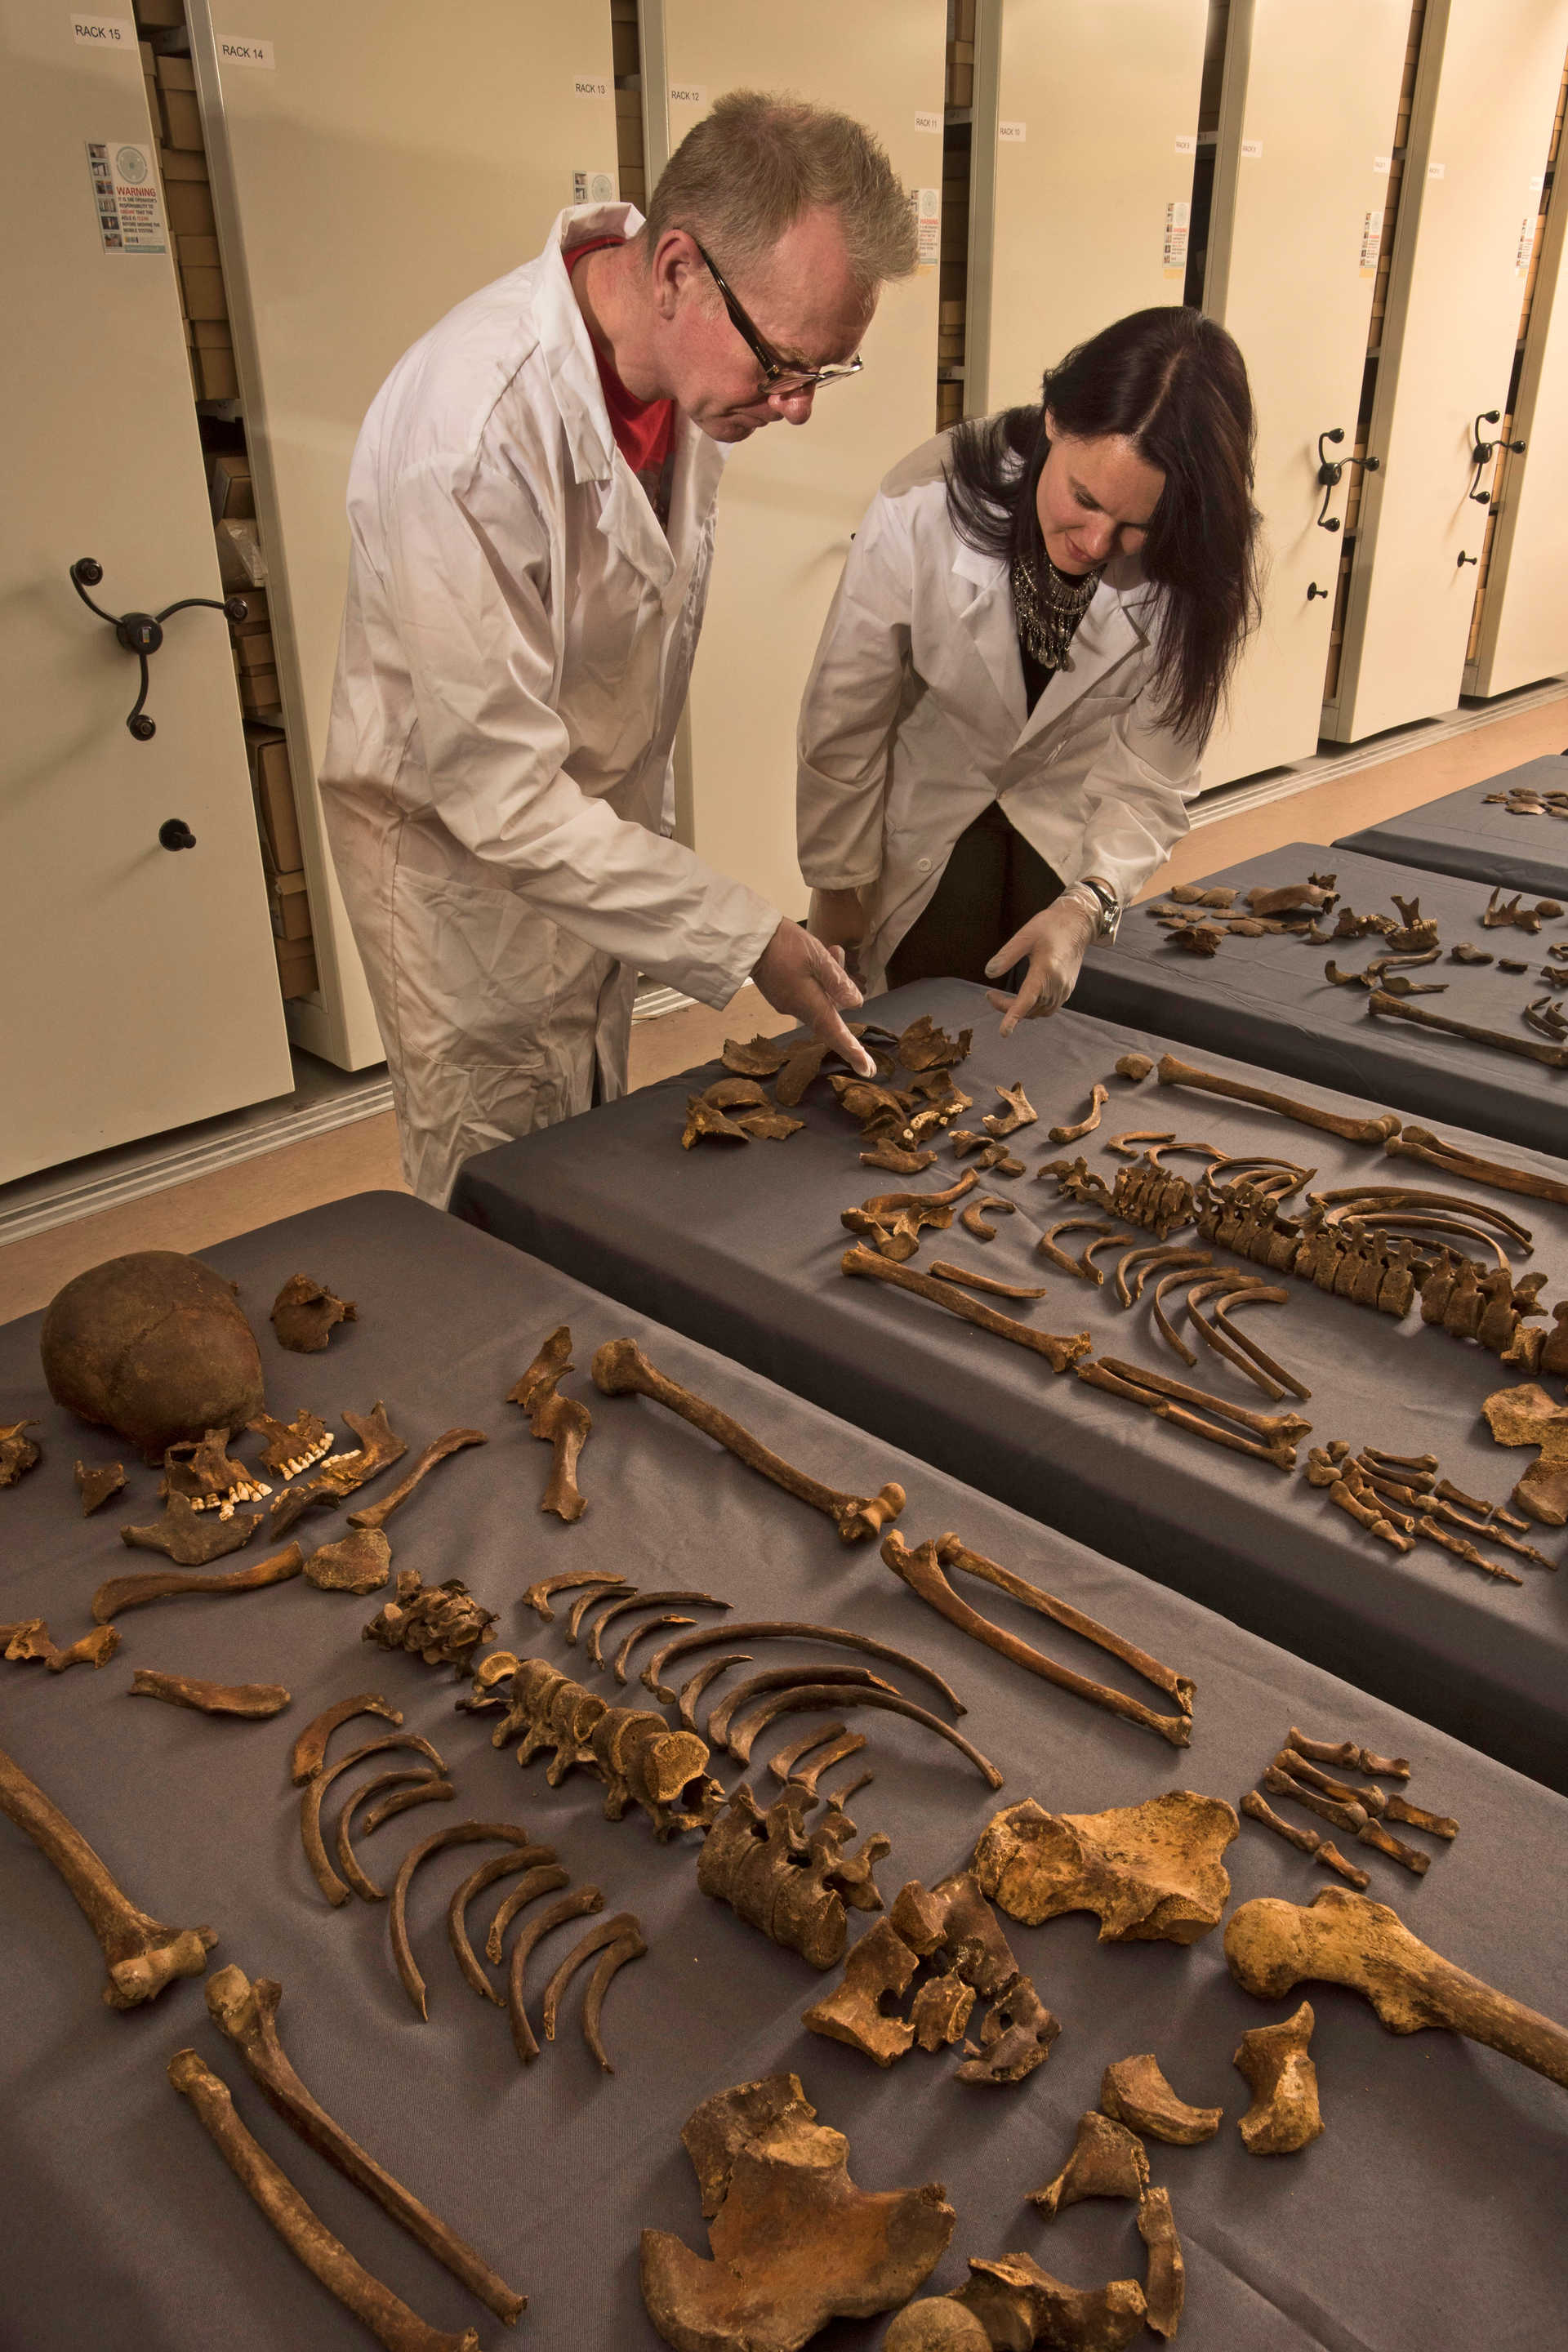 MOLA archaeologists examine 1665 Great Plague victim_244618 ...